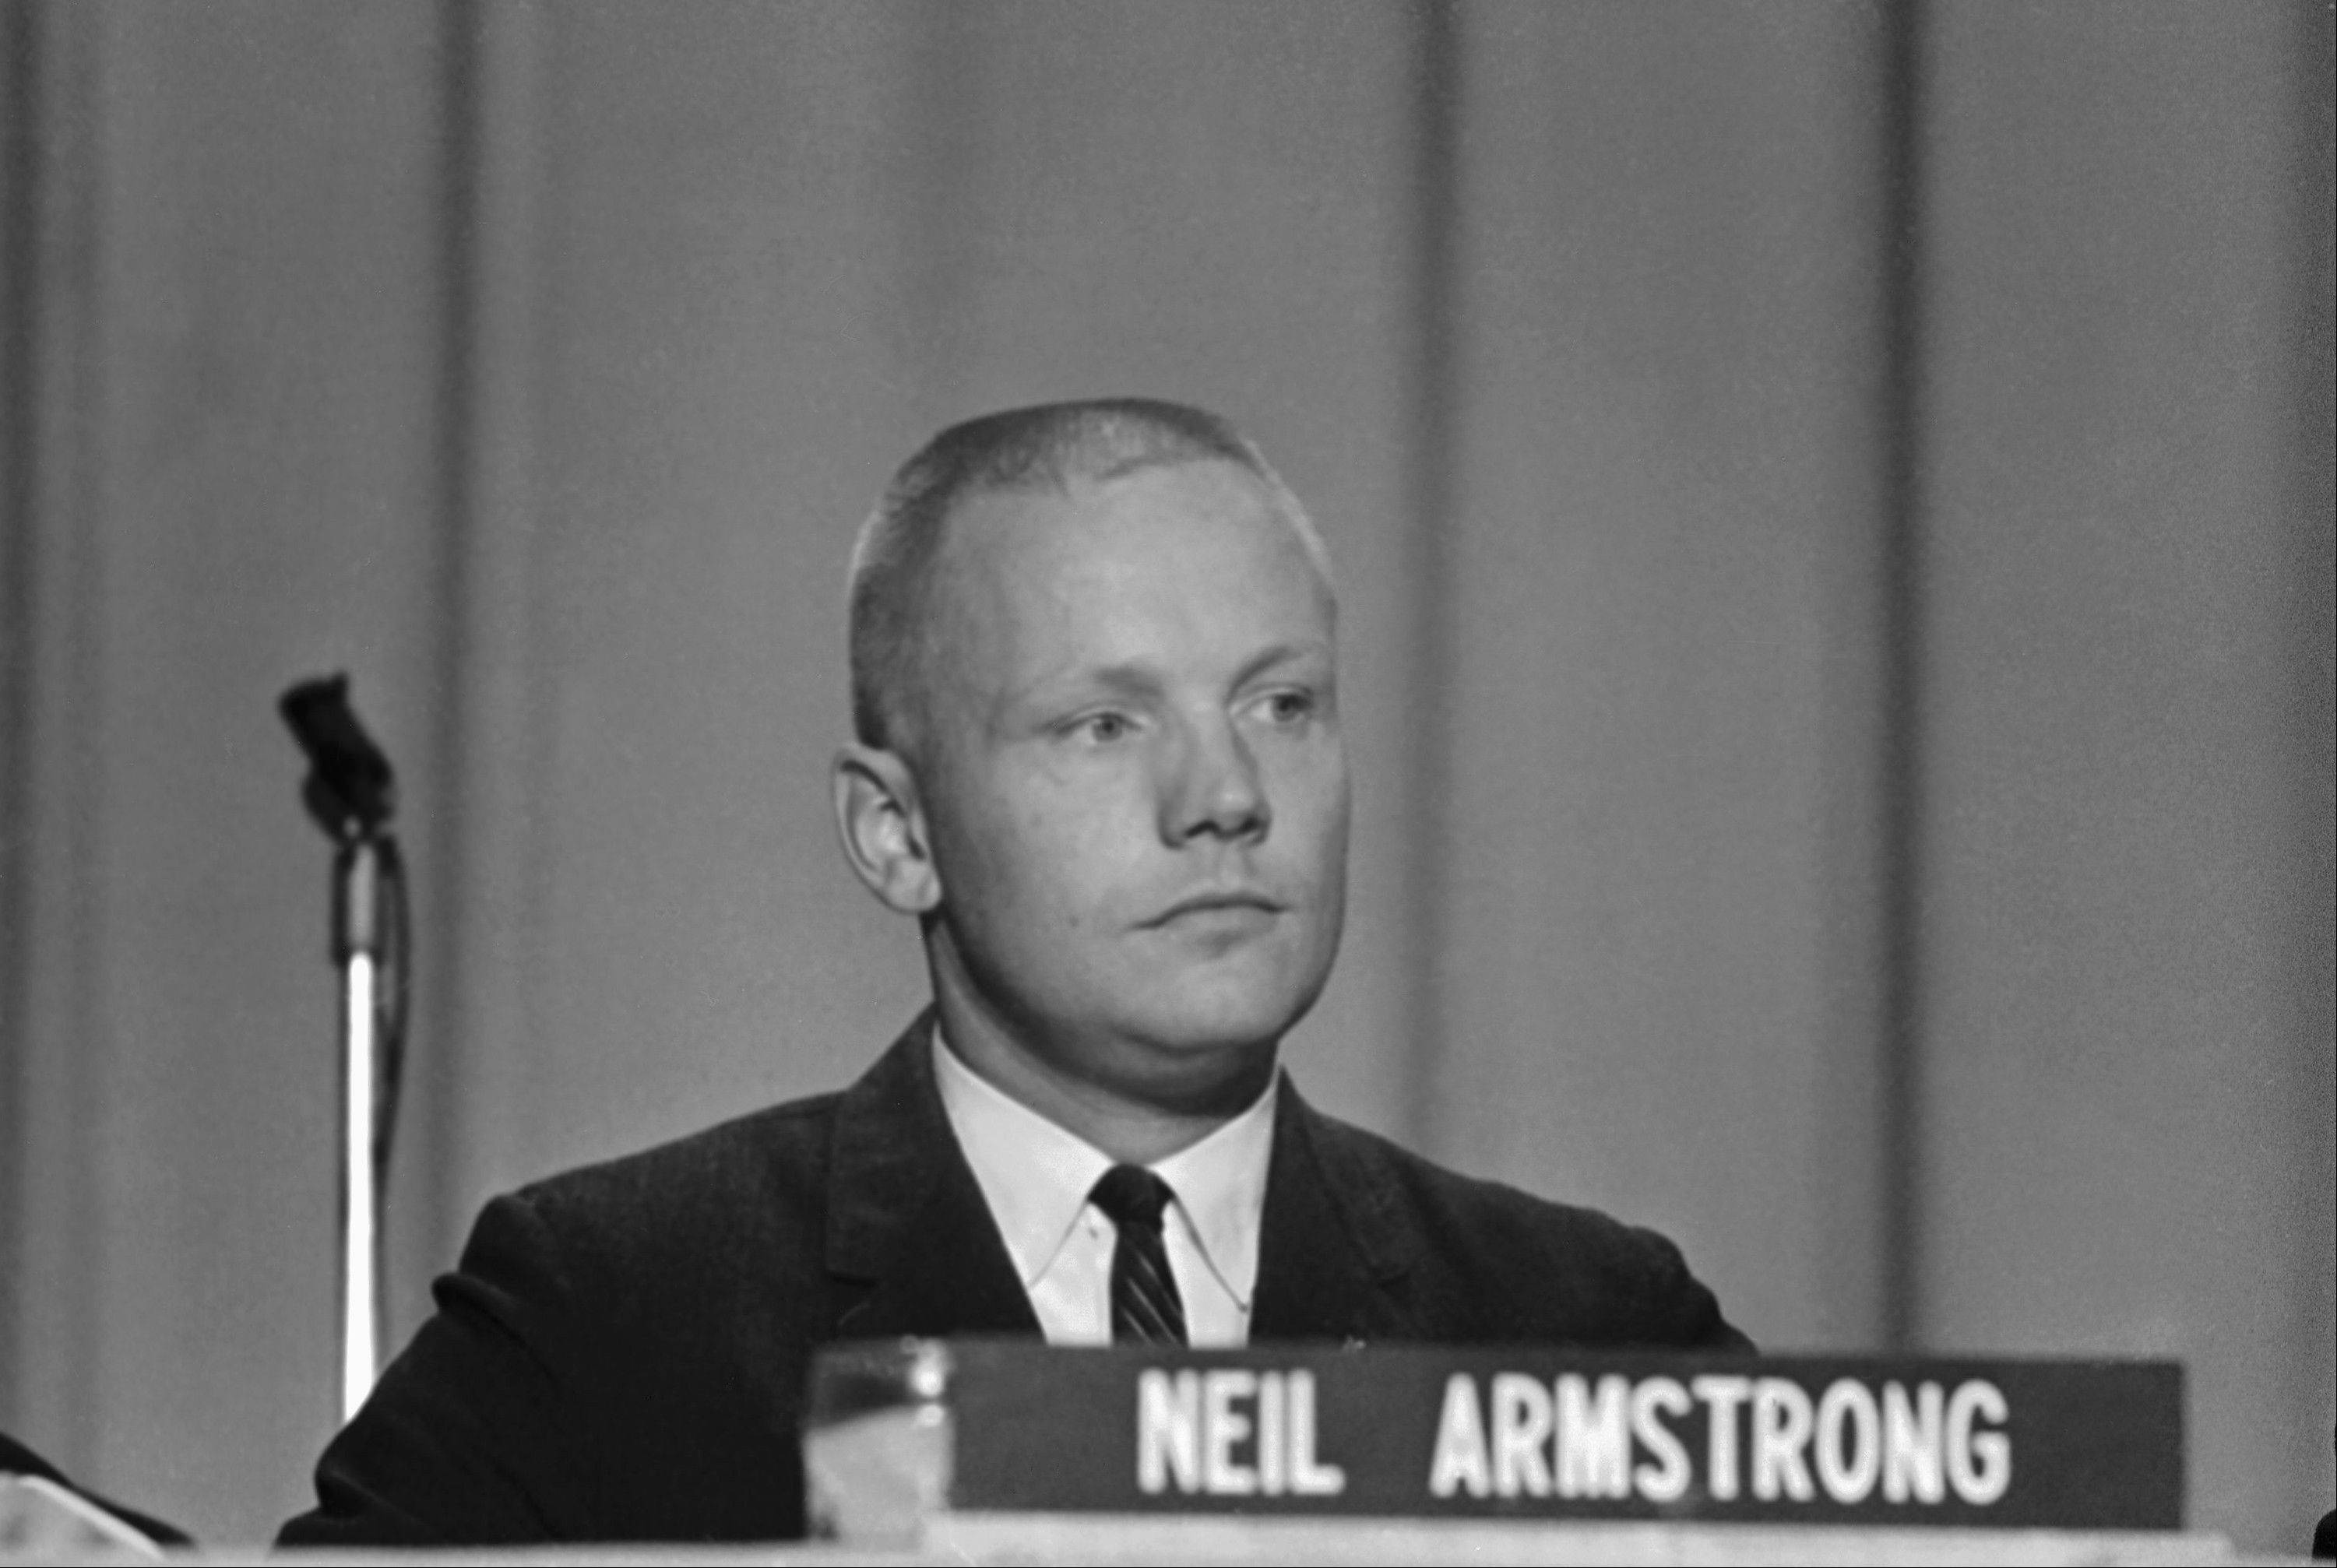 "In this Sept. 17, 1962 file photo, Neil Armstrong, one of the nine astronauts, is shown as he was introduced to the press, along with the other astronauts in Houston. The family of Neil Armstrong, the first man to walk on the moon, says he has died at age 82. A statement from the family says he died following complications resulting from cardiovascular procedures. It doesn't say where he died. Armstrong commanded the Apollo 11 spacecraft that landed on the moon July 20, 1969. He radioed back to Earth the historic news of ""one giant leap for mankind."" Armstrong and fellow astronaut Edwin ""Buzz"" Aldrin spent nearly three hours walking on the moon, collecting samples, conducting experiments and taking photographs. In all, 12 Americans walked on the moon from 1969 to 1972."